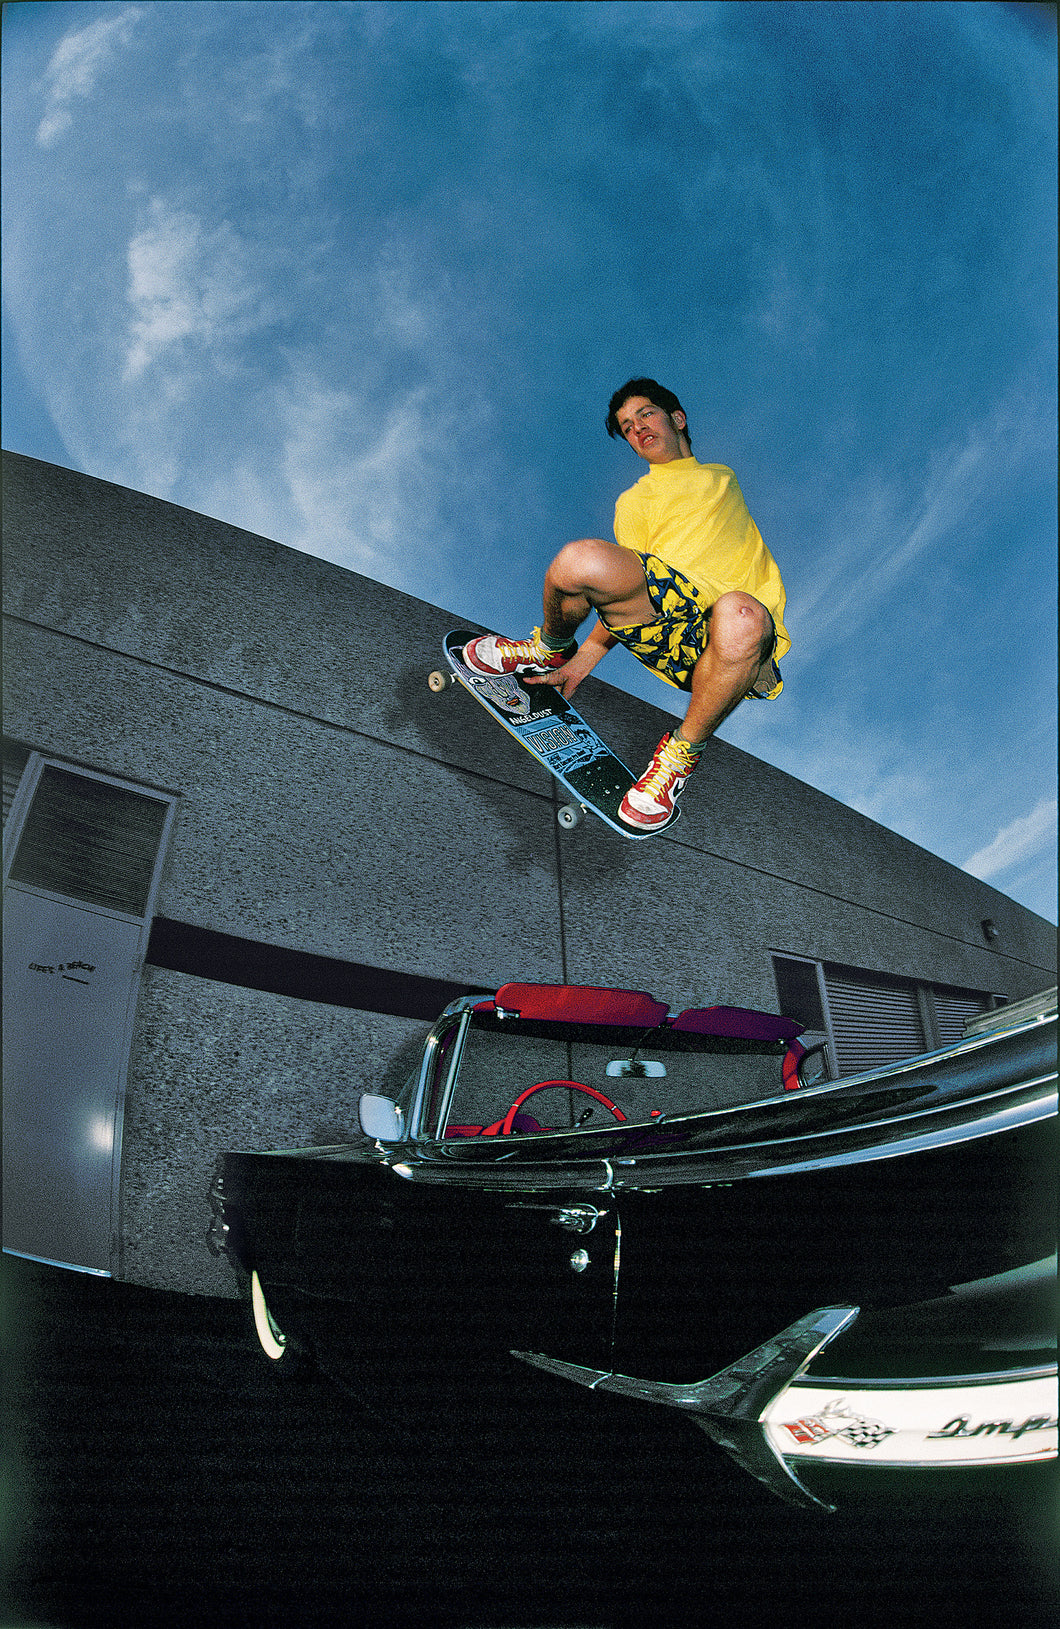 Mark Gonzales Jumps a Chevy Impala in 1986 J Grant Brittain